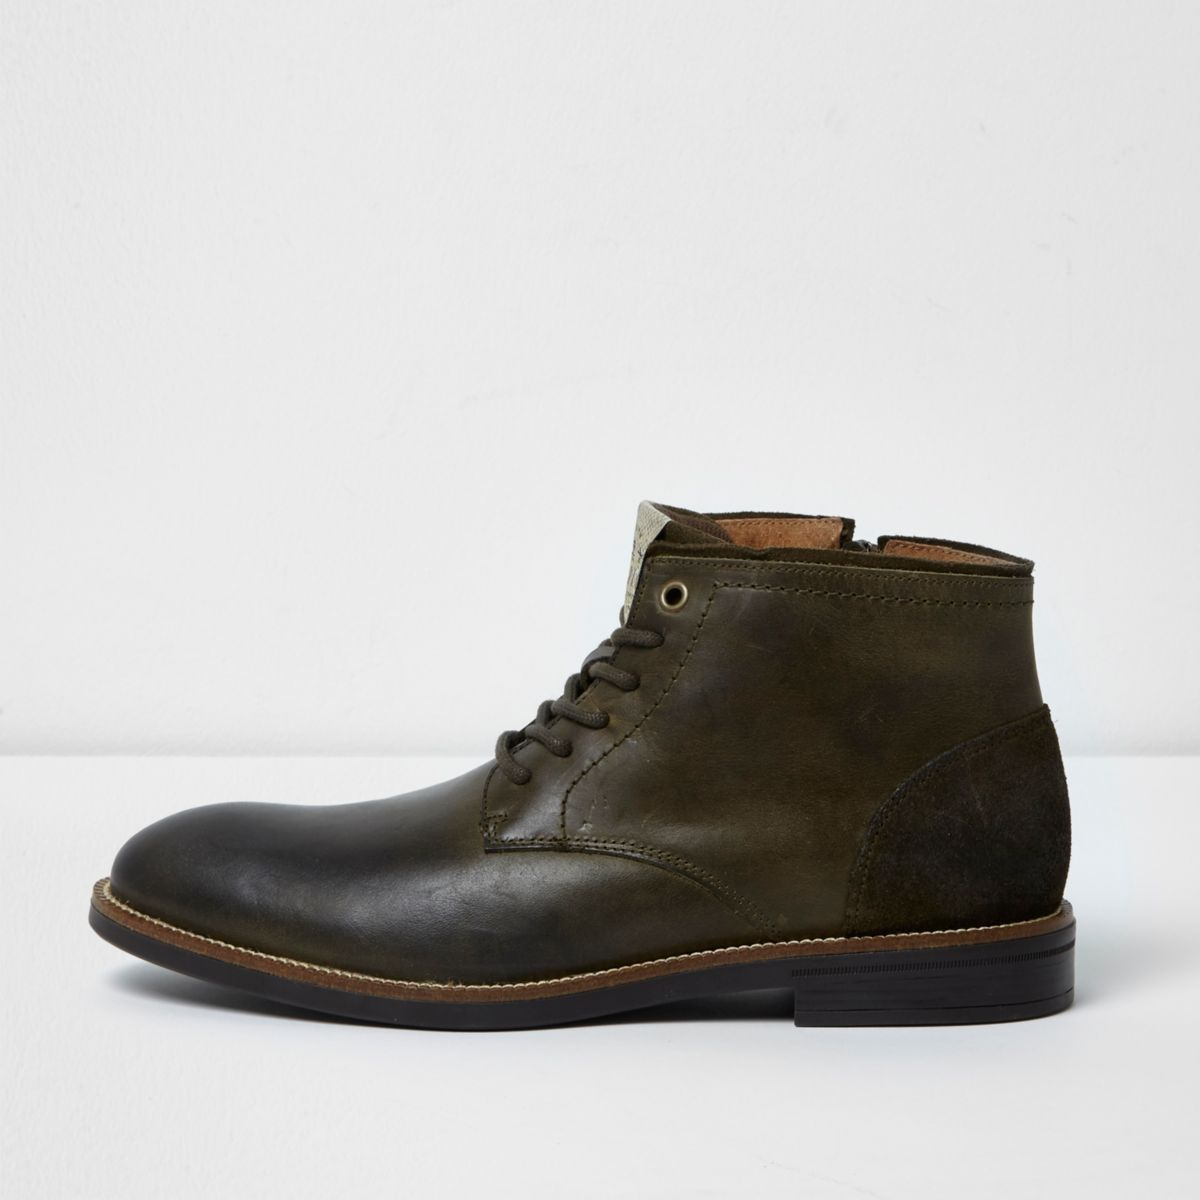 khaki leather boots boots shoes boots